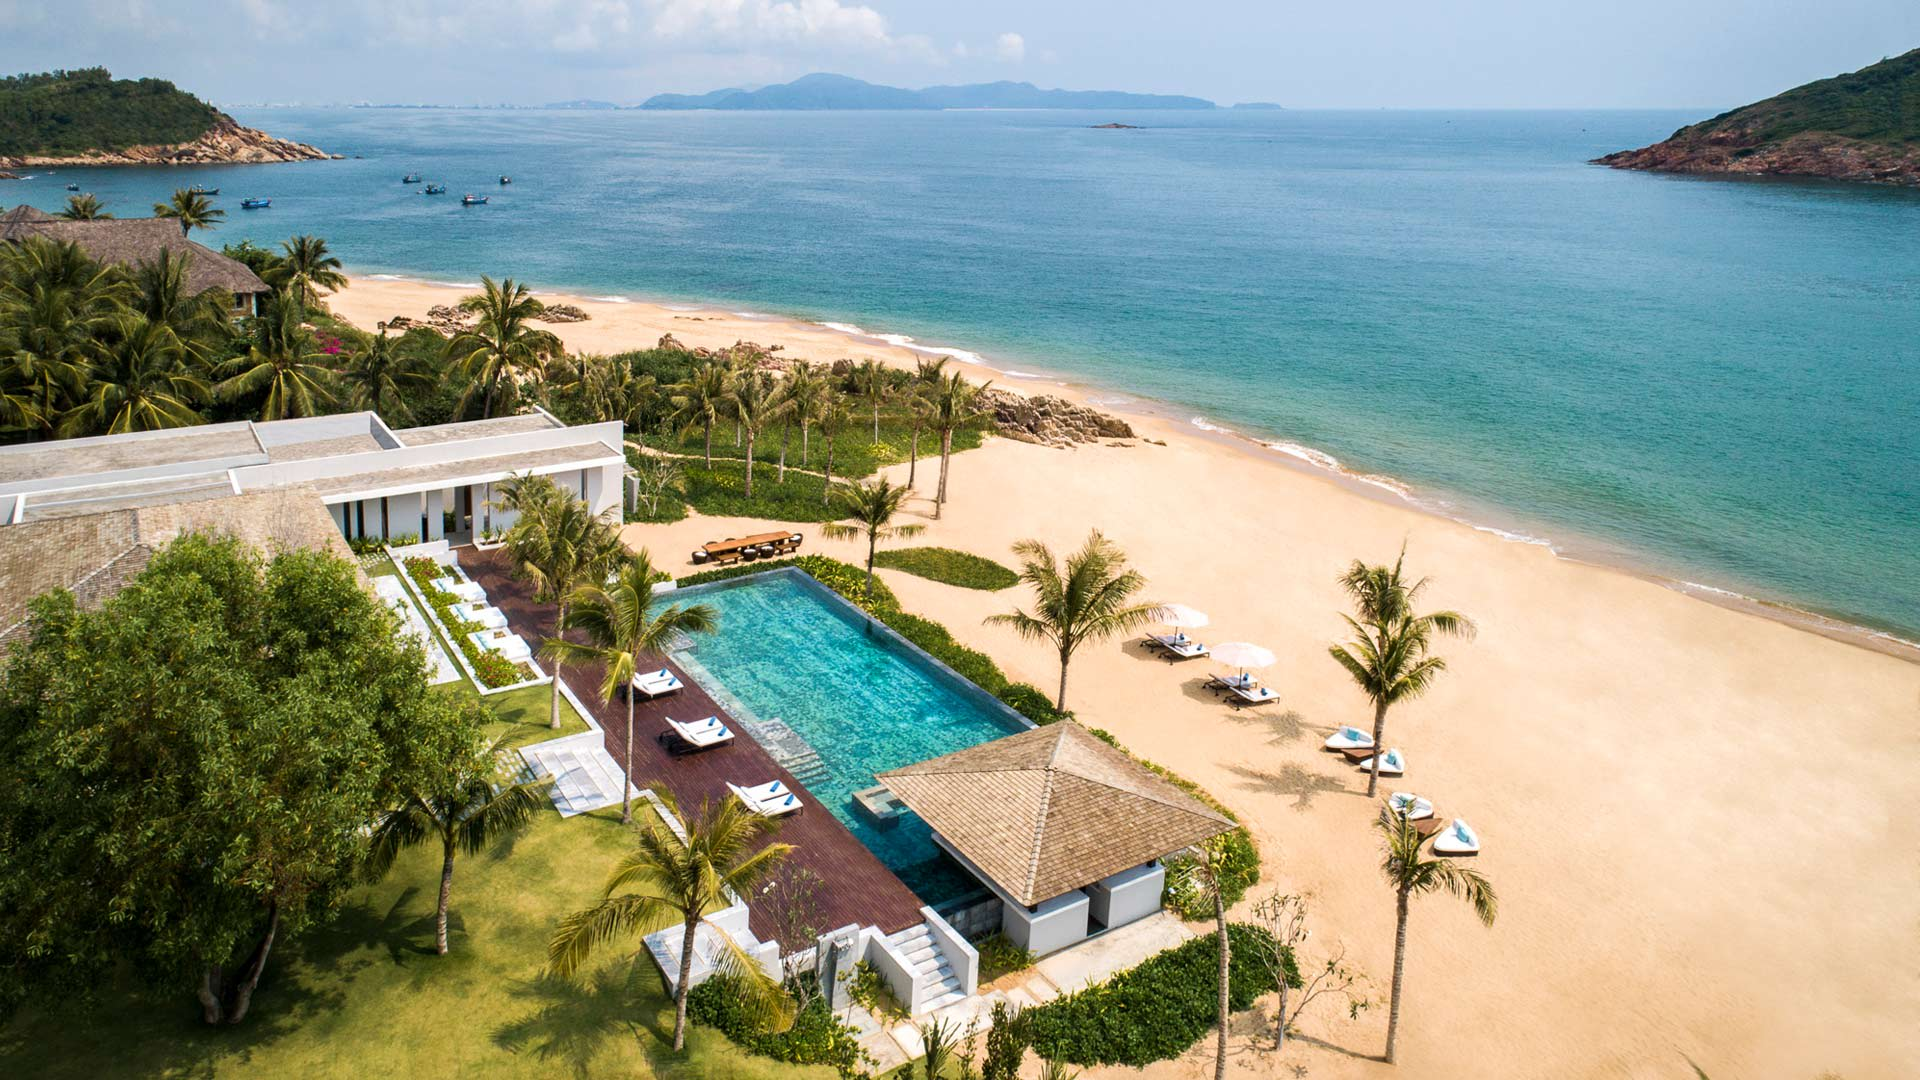 https://assets.anantara.com/image/upload/q_auto/media/minor/anantara/images/anantara-quy-nhon-villas/the-resort/anantara_quy_nhon_villas_desktop_banner_1920x1080.jpg